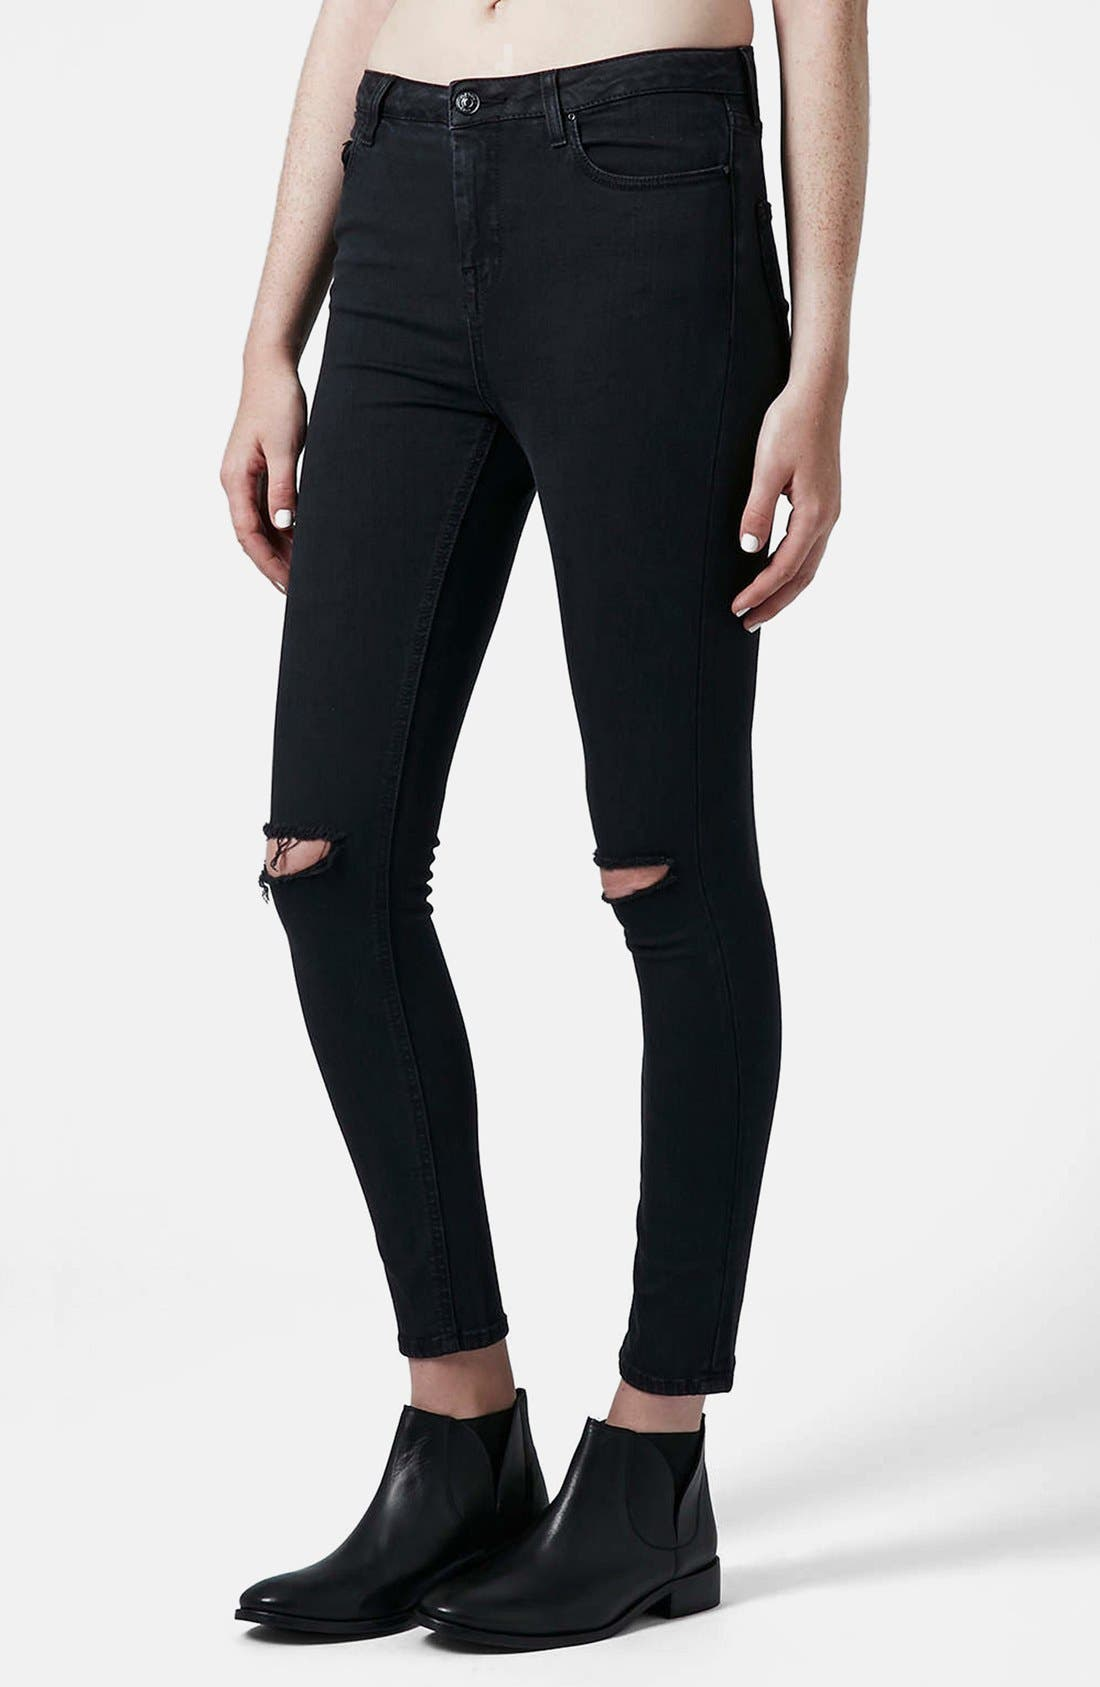 Main Image - Topshop Moto 'Jamie' Dark Wash Ripped Slim Jeans (Black) (Short & Regular)